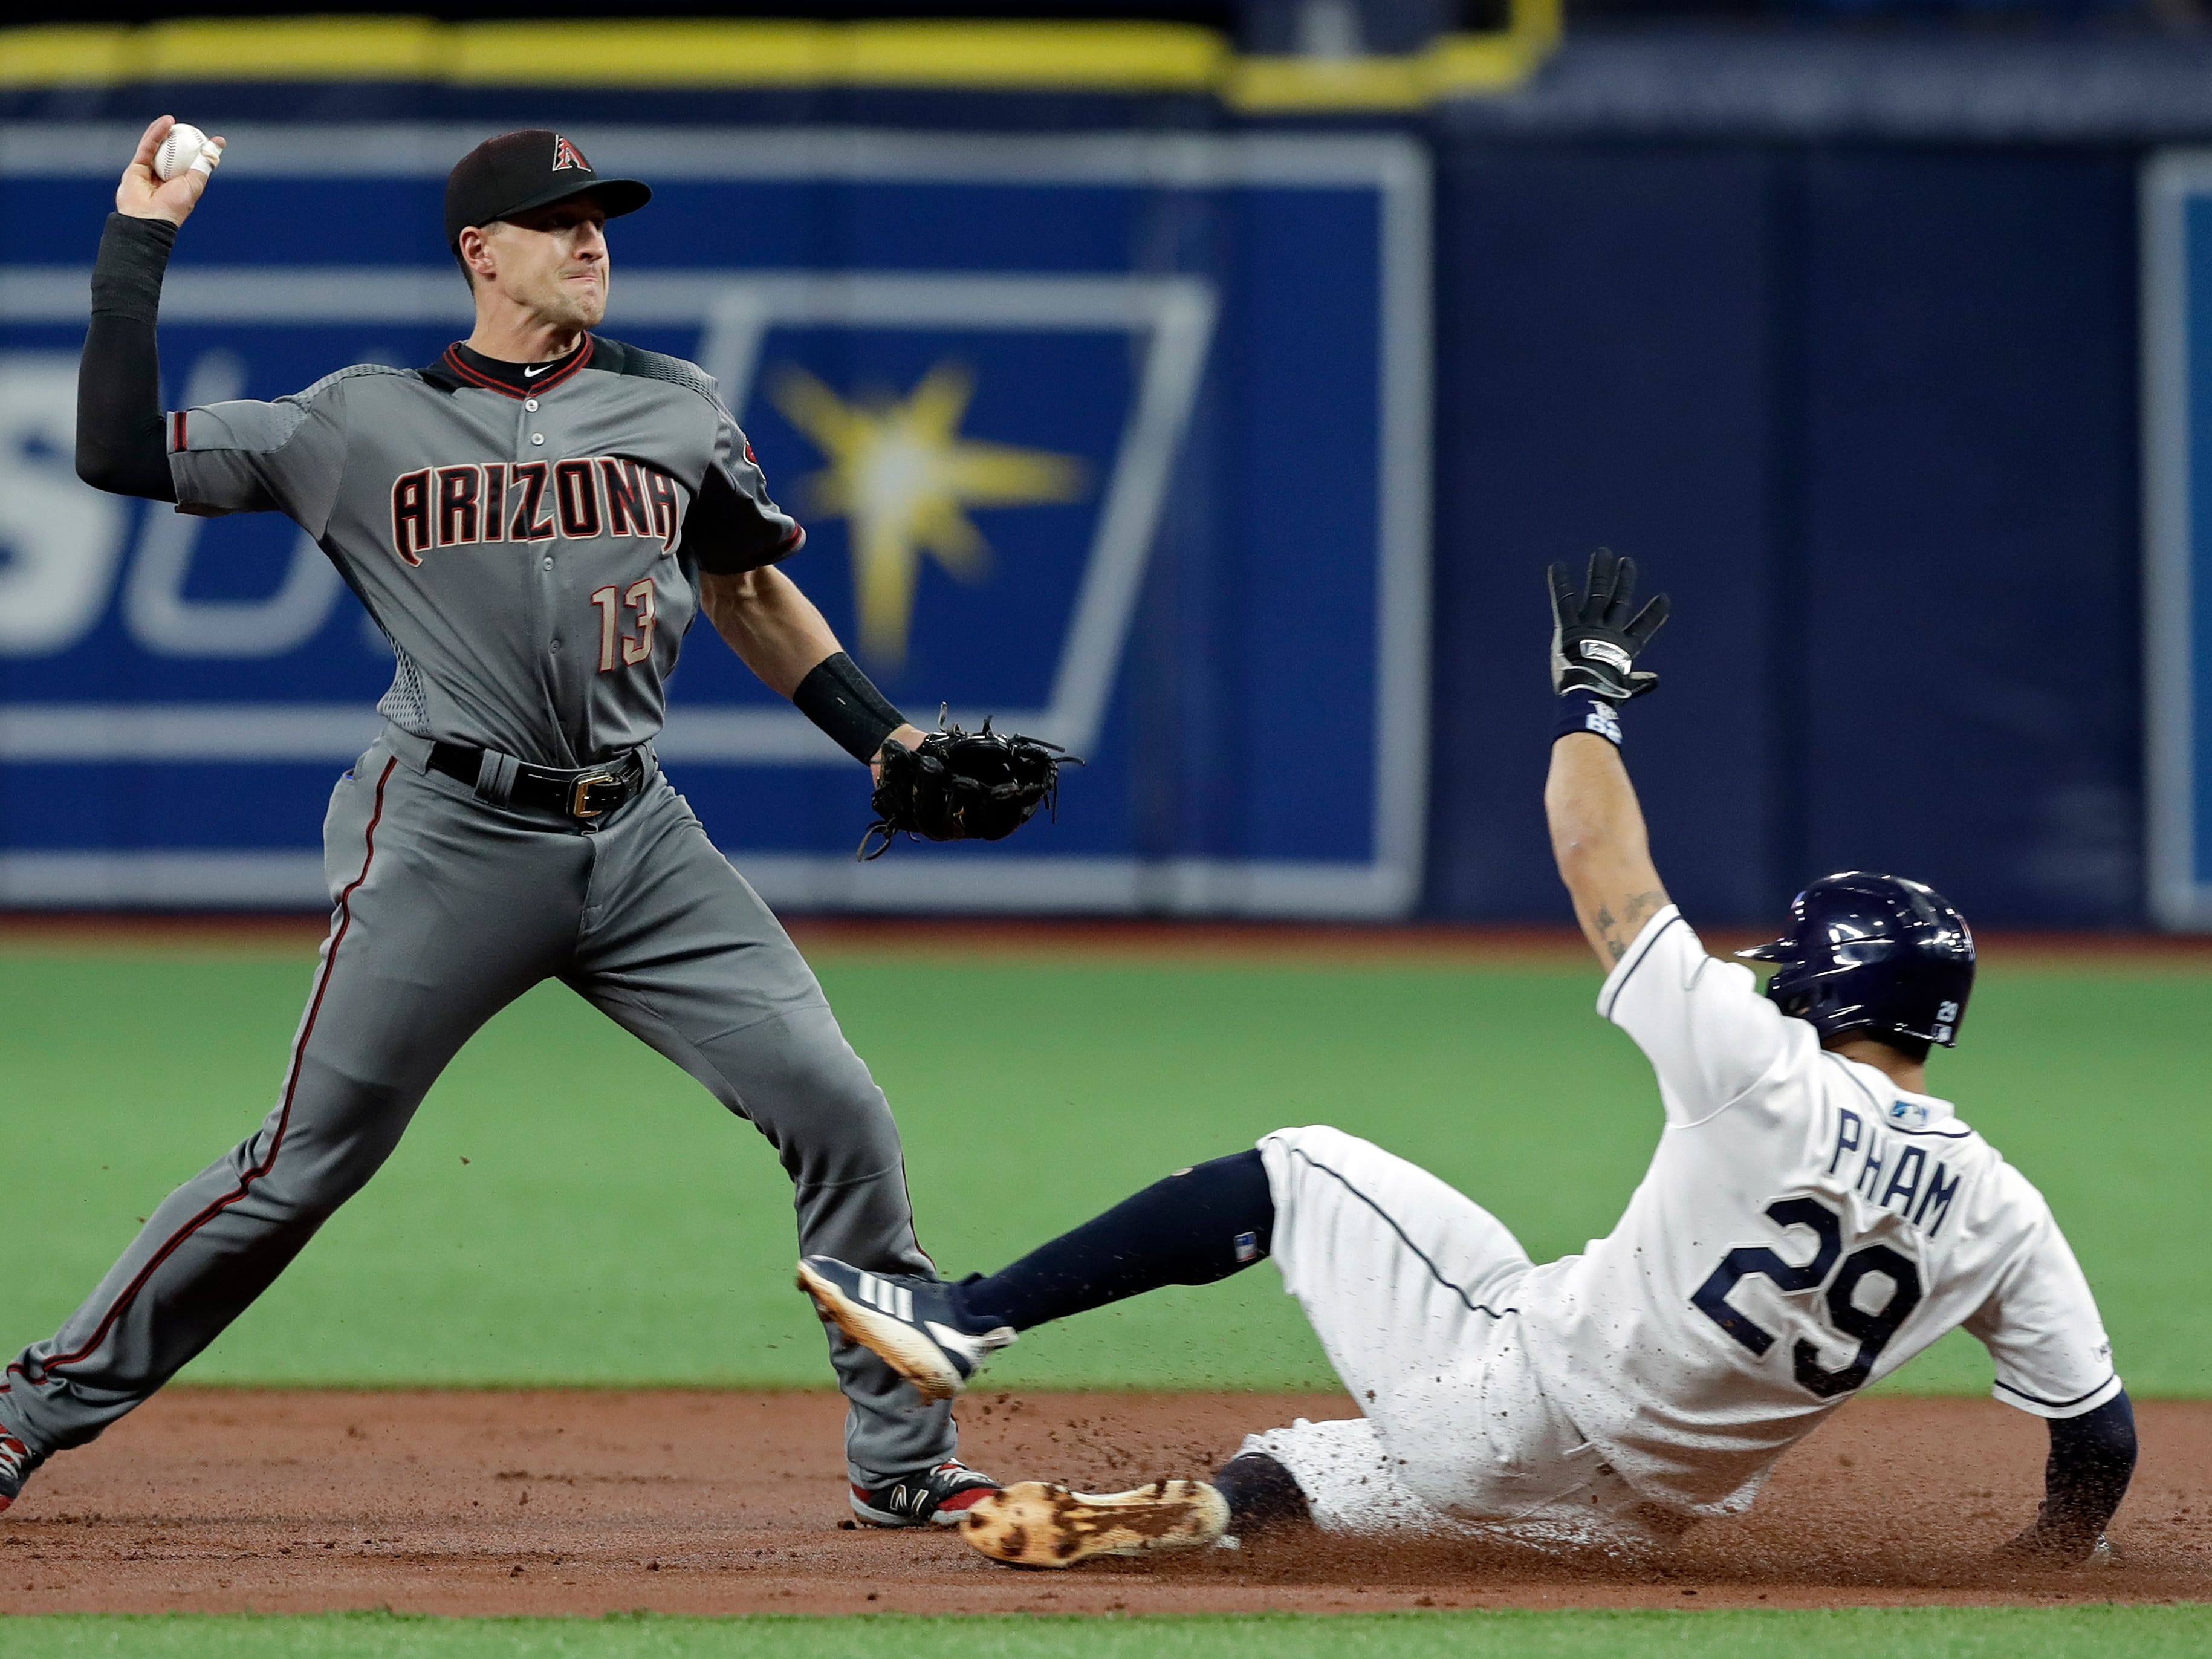 Arizona Diamondbacks shortstop Nick Ahmed (13) forces out Tampa Bay Rays' Tommy Pham at second on a fielder's choice by Ji-Man Choi during the first inning of a baseball game Monday, May 6, 2019, in St. Petersburg, Fla.